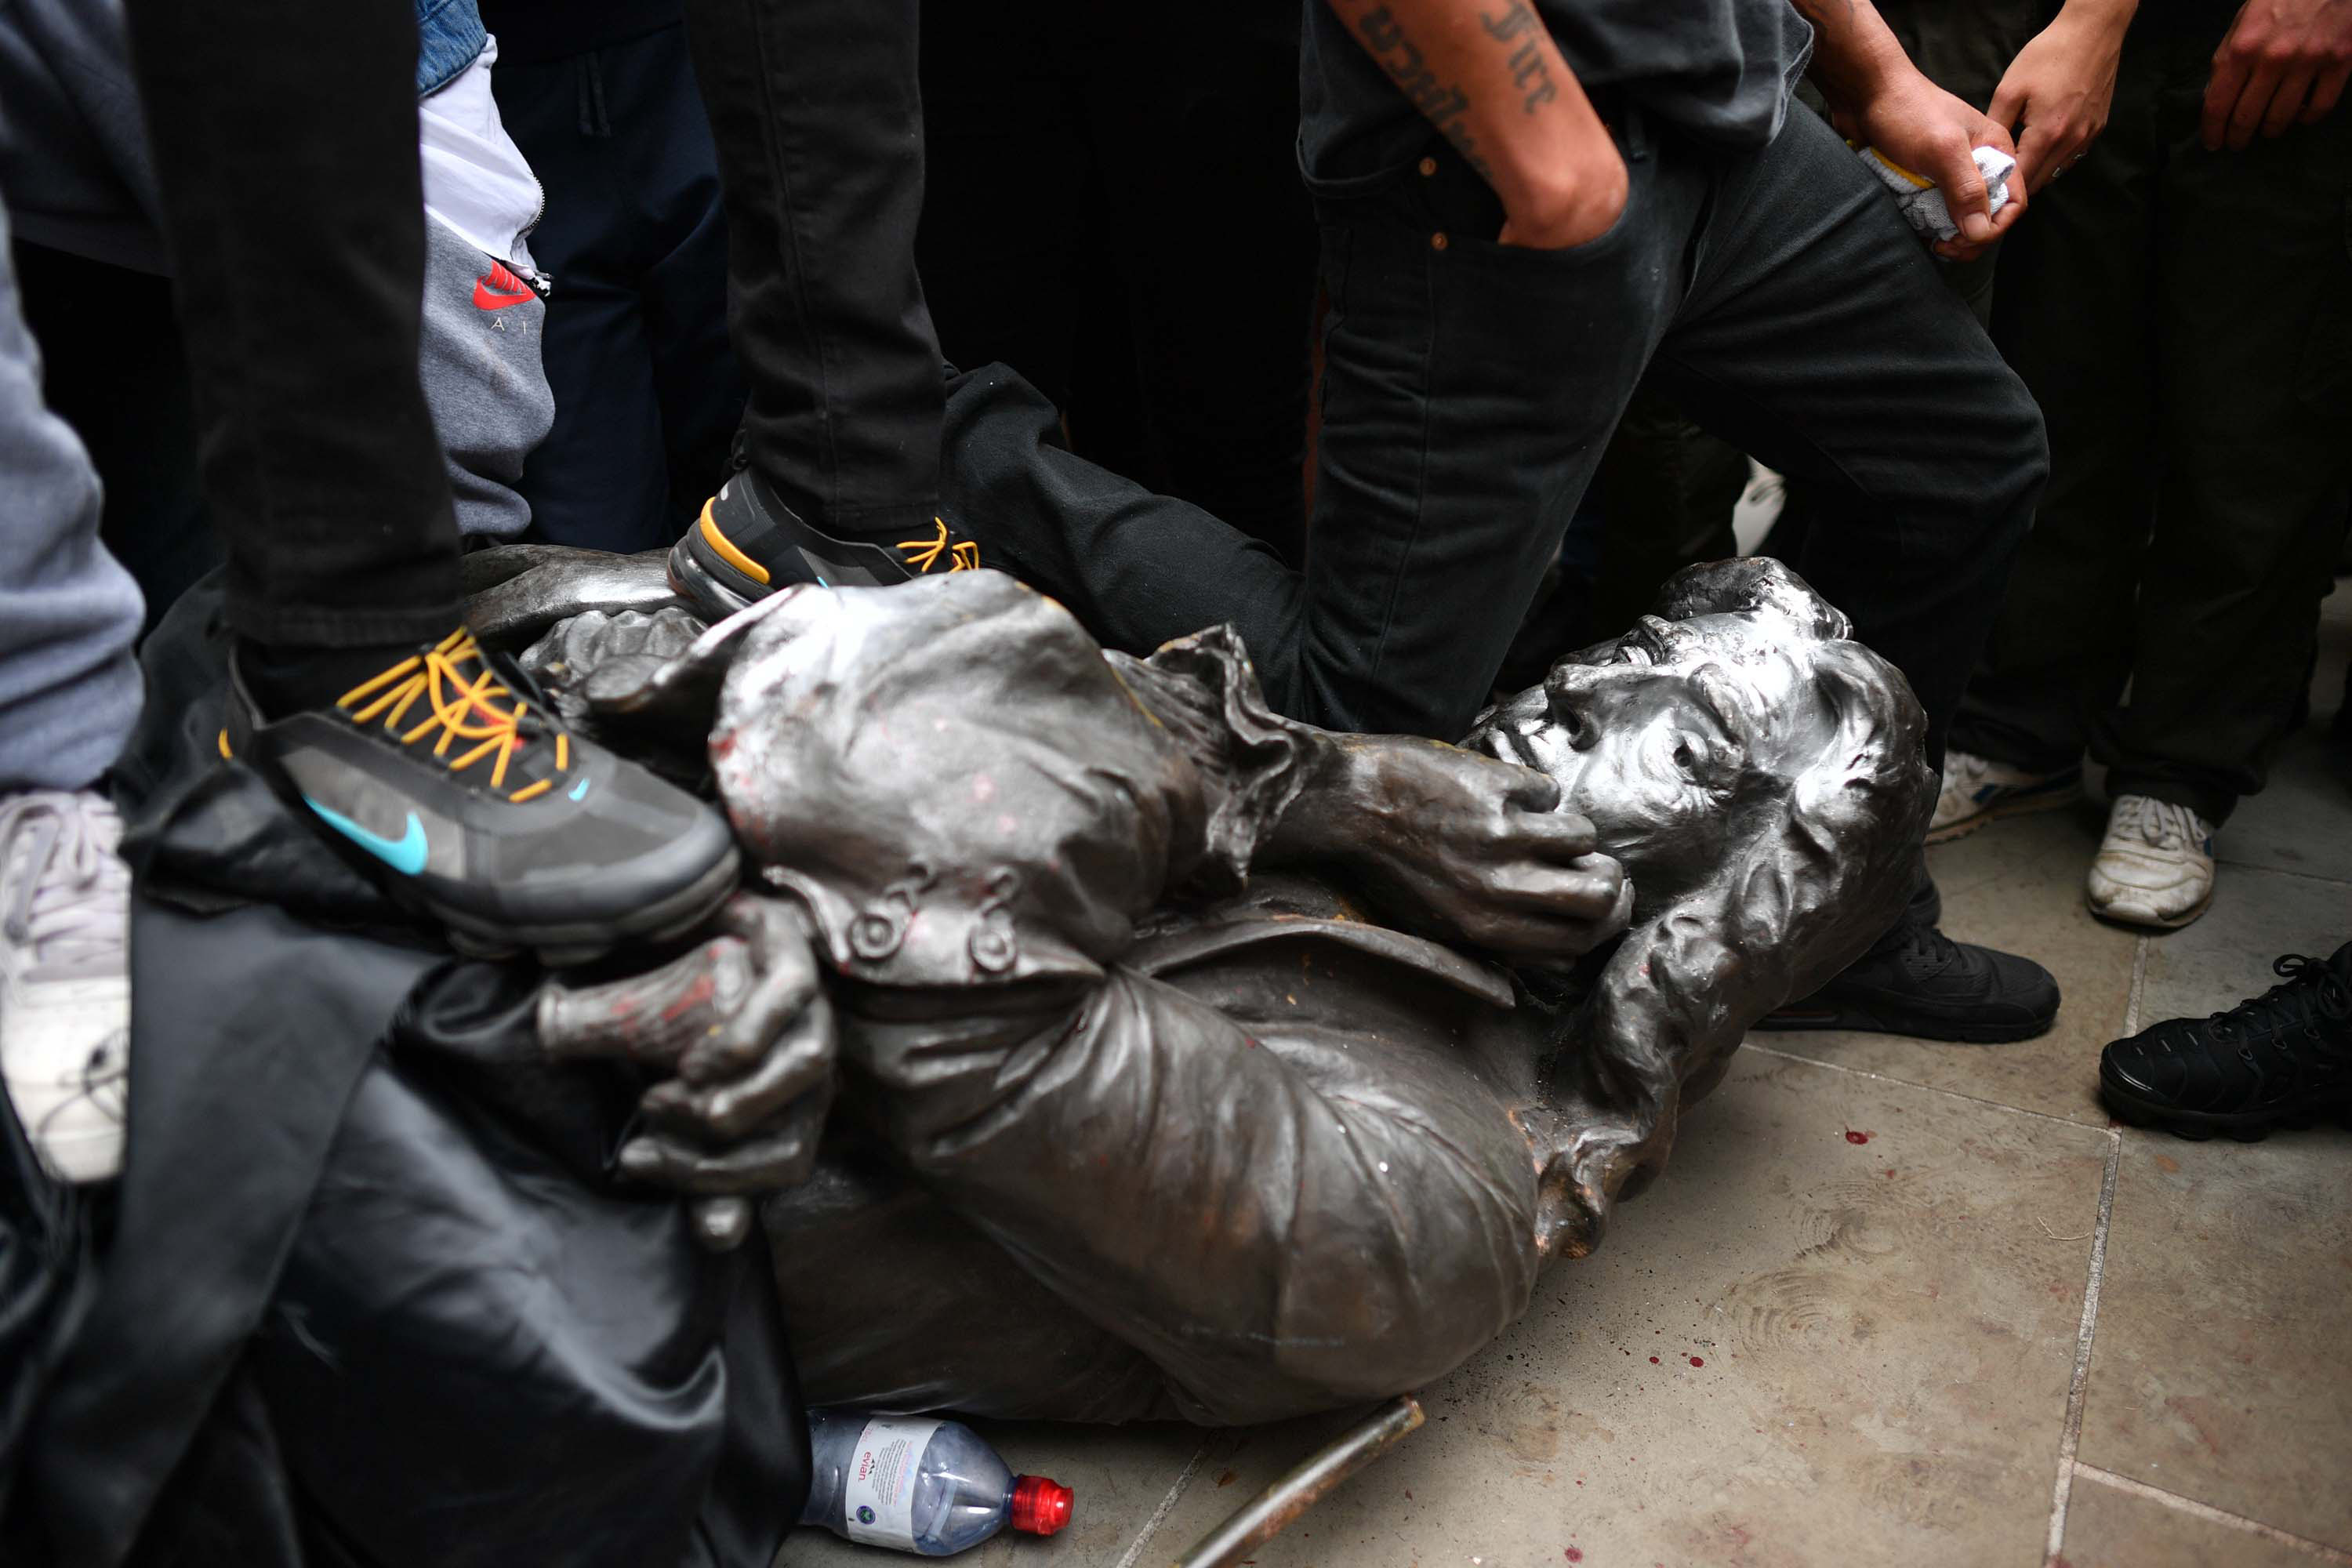 Protesters pull down a statue of 17th-century slave trader Edward Colston during a Black Lives Matter rally in Bristol, England, on June 7.